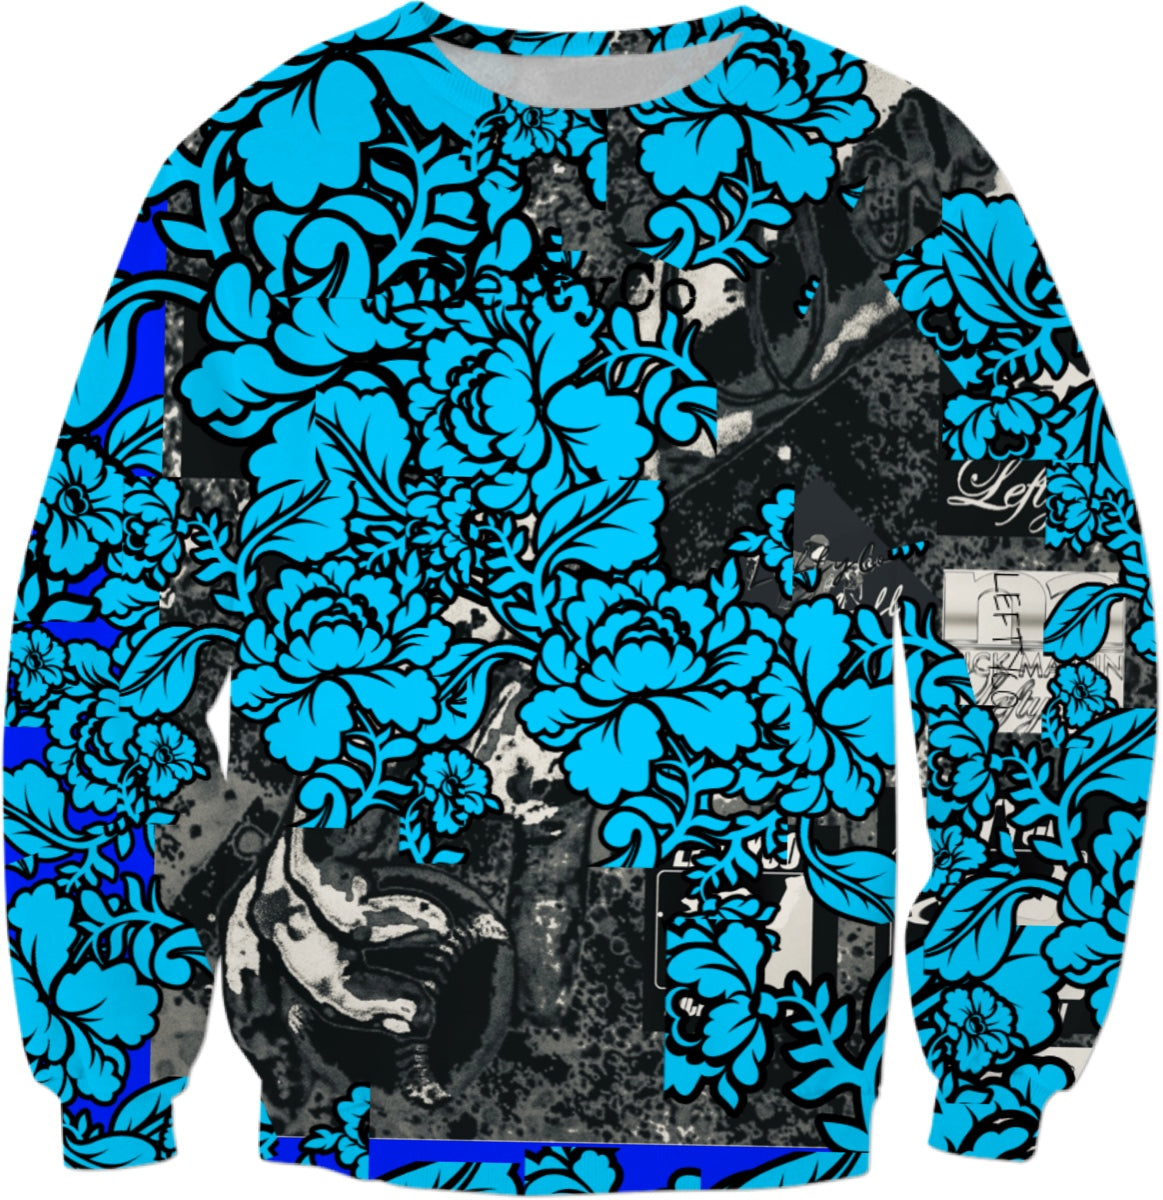 LEFTYCO ~ 11521 Blue Drip sweatshirt